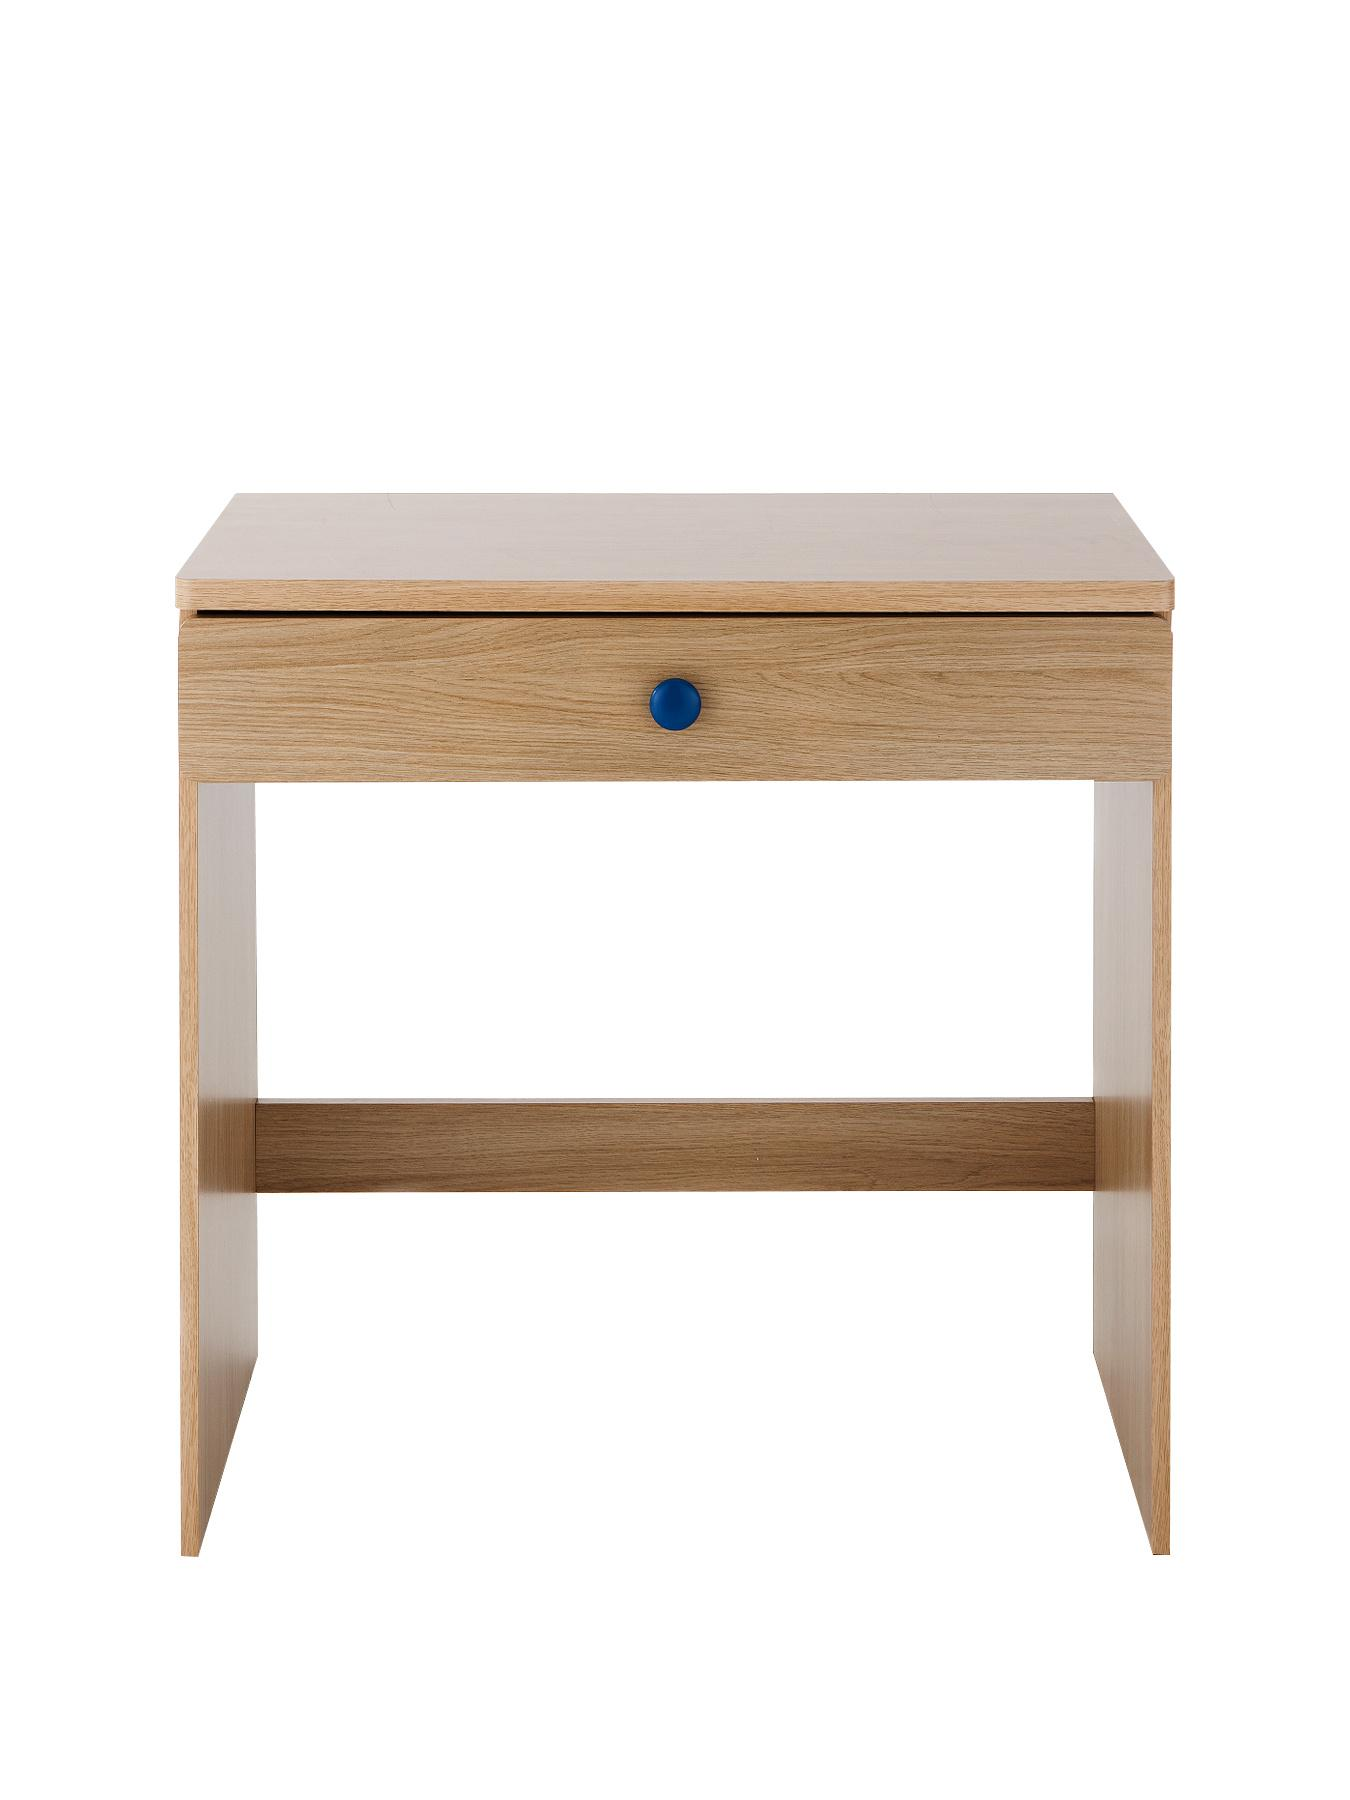 Bedroom Chairs Littlewoods : ... bedroom furniture, this more info on Memphis Kids Dressing Table/Desk